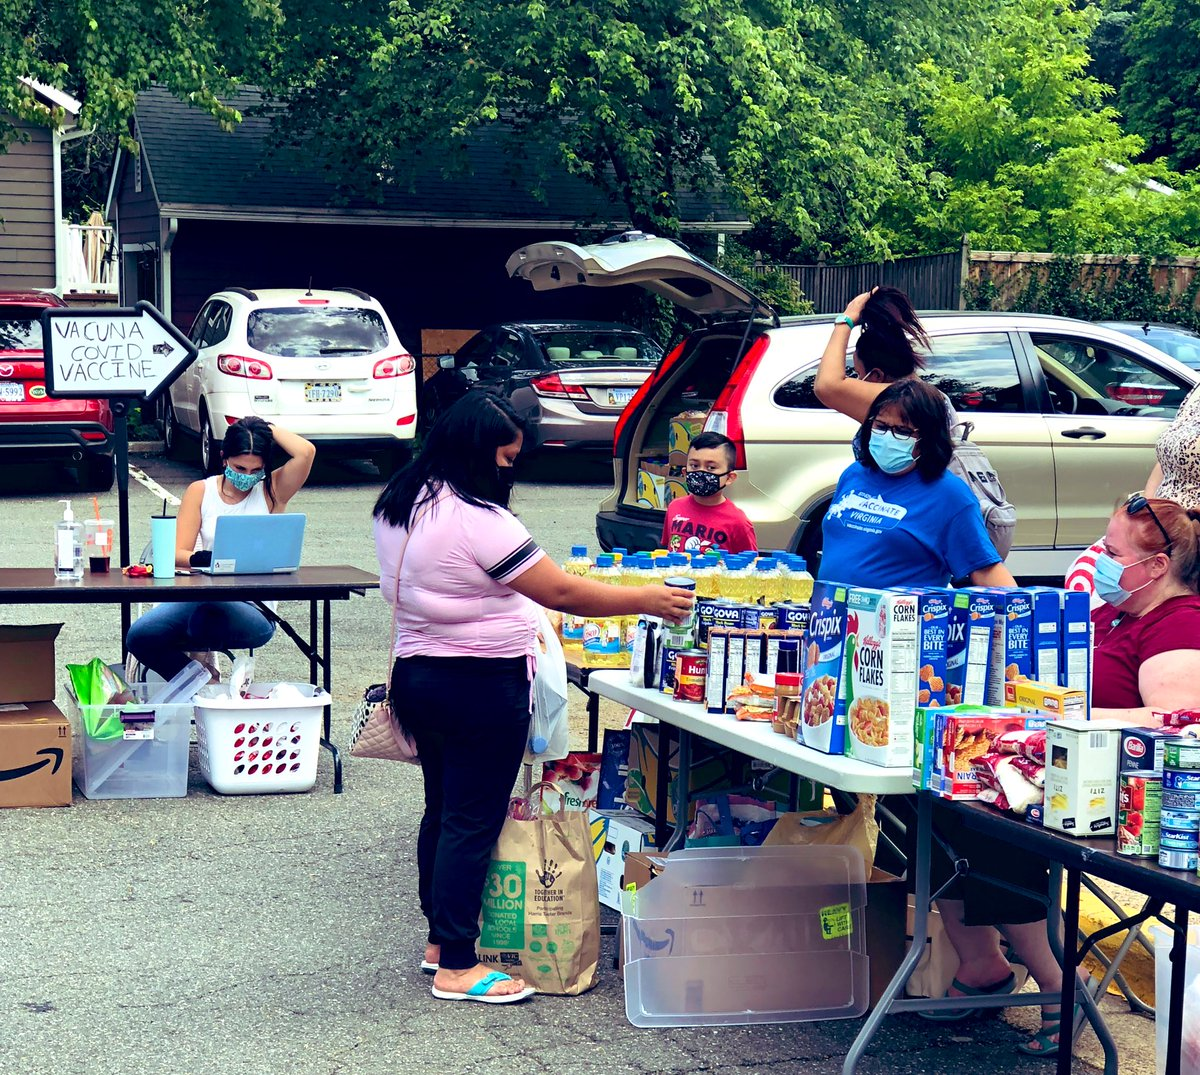 Barcroft's PTA & <a target='_blank' href='http://twitter.com/CISBarcroft'>@CISBarcroft</a> providing supplies and friendship on our final distribution of the school year. Thanks for a phenomenal job. <a target='_blank' href='http://search.twitter.com/search?q=TeamBarcroft'><a target='_blank' href='https://twitter.com/hashtag/TeamBarcroft?src=hash'>#TeamBarcroft</a></a> <a target='_blank' href='http://twitter.com/BarcroftEagles'>@BarcroftEagles</a> <a target='_blank' href='http://twitter.com/APSVirginia'>@APSVirginia</a> <a target='_blank' href='http://twitter.com/GabyRivasAPS'>@GabyRivasAPS</a> <a target='_blank' href='http://twitter.com/krumbiegelgirl'>@krumbiegelgirl</a> <a target='_blank' href='https://t.co/VKVZ2lEpqf'>https://t.co/VKVZ2lEpqf</a>